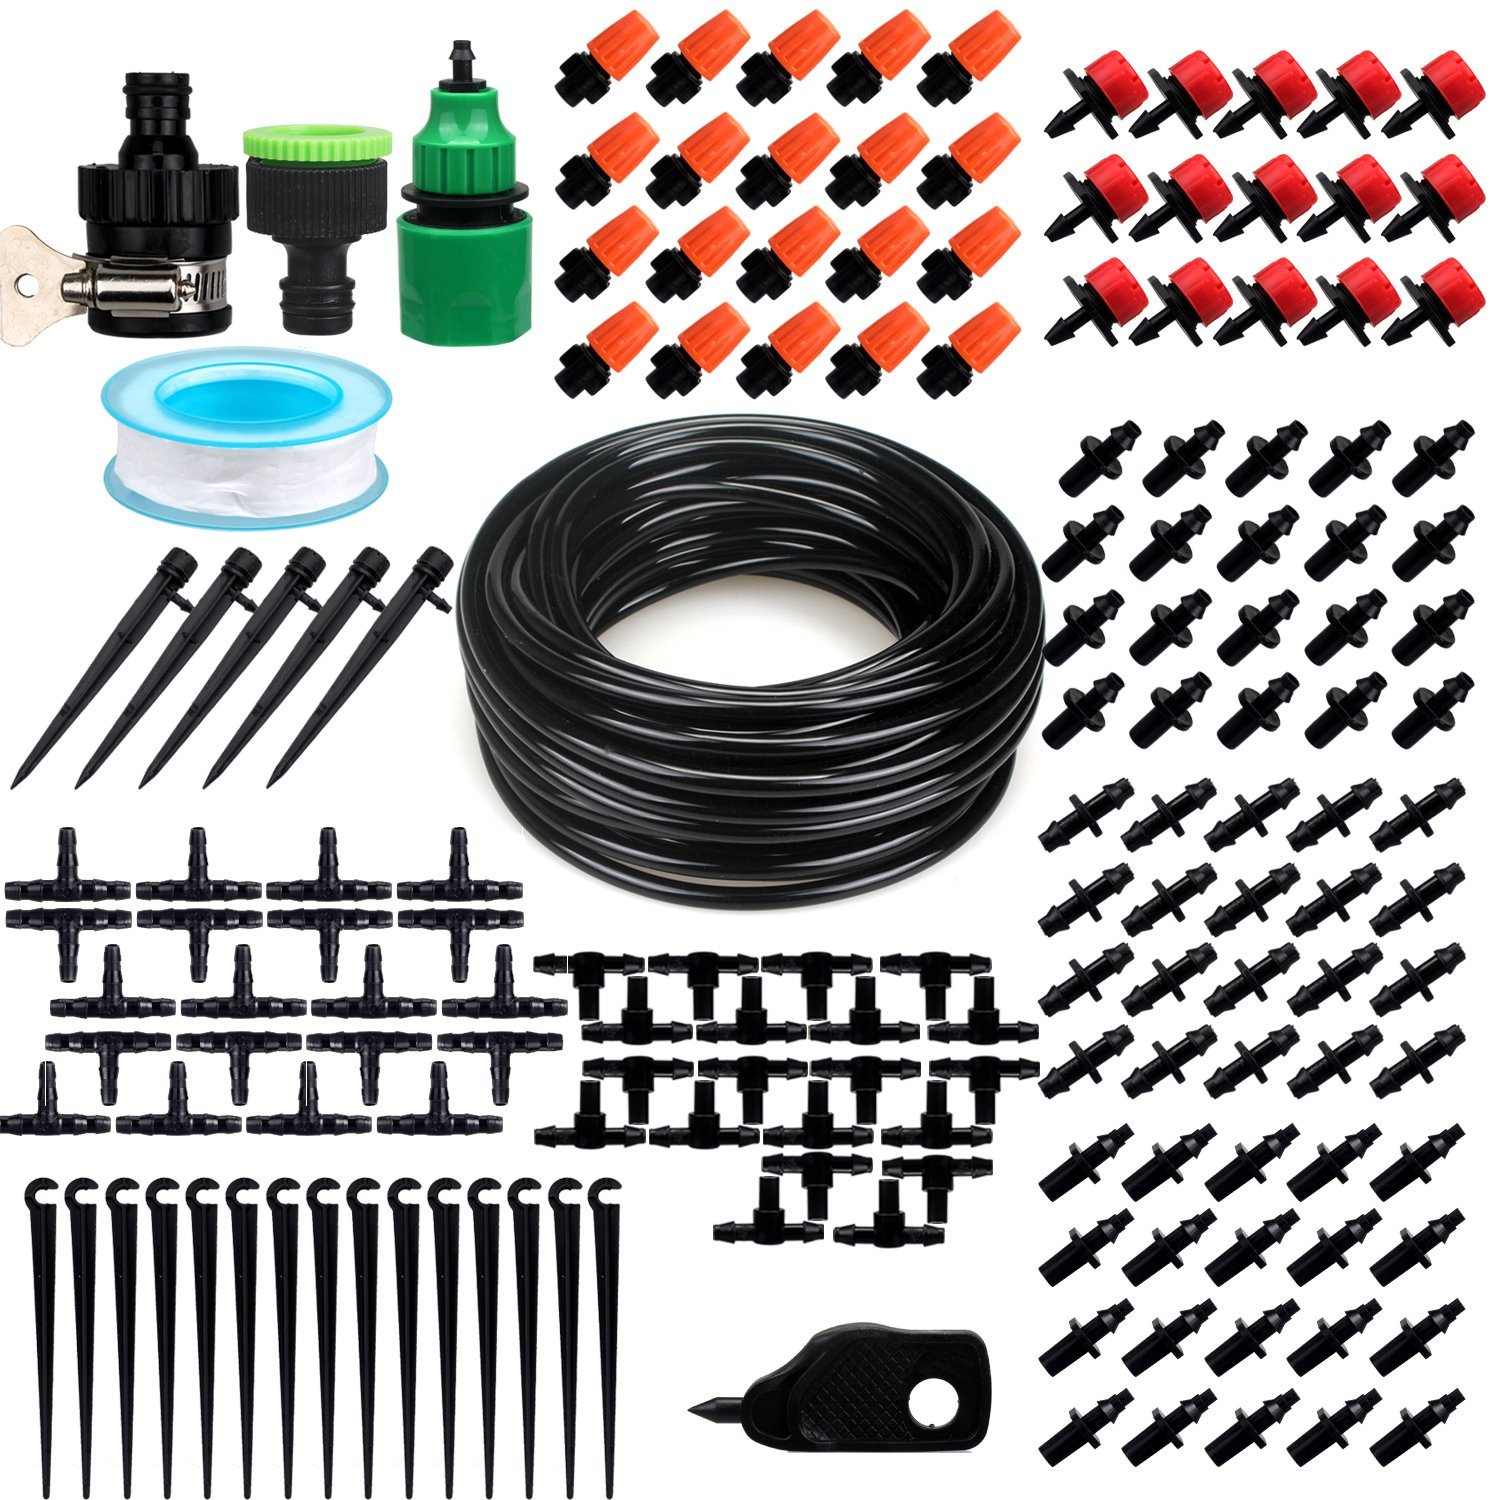 Patio Plant Watering Kit,50ft 1/4'' Blank Distribution Tubing Hose DIY Garden Drip Irrigation System, Misting Cooling System with Mister Nozzle Sprinkler for Pots &Containers